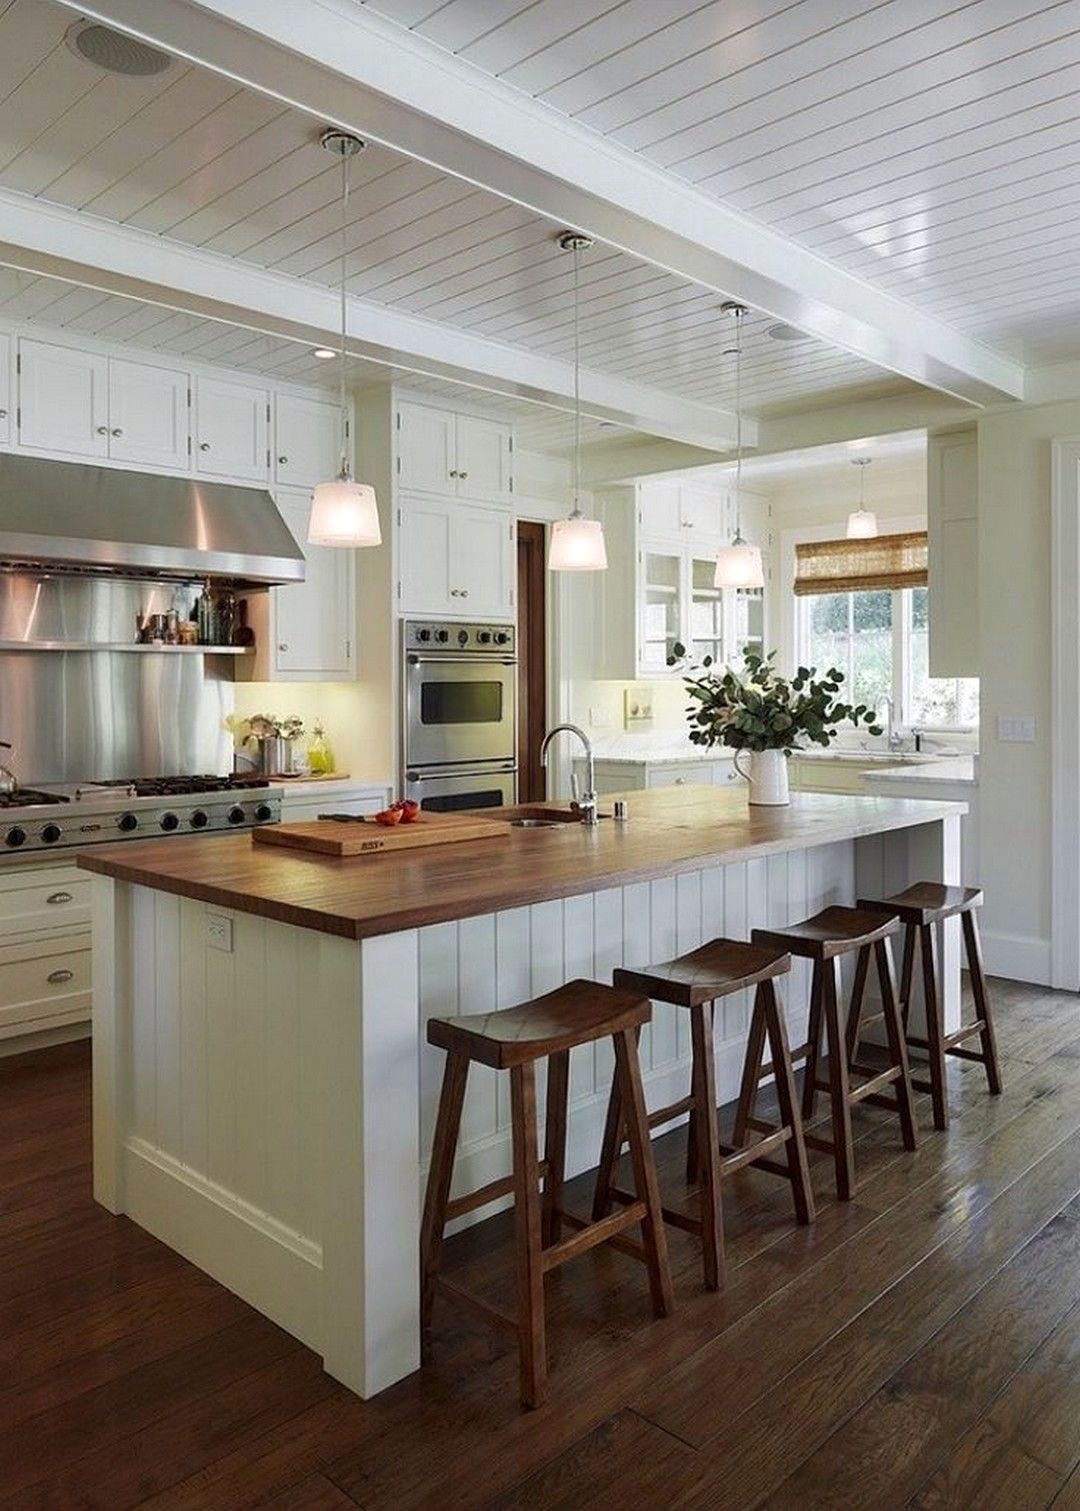 Cute Kitchen Island With Seating Etsy For 2019 Cozinha Ilha Gourmet